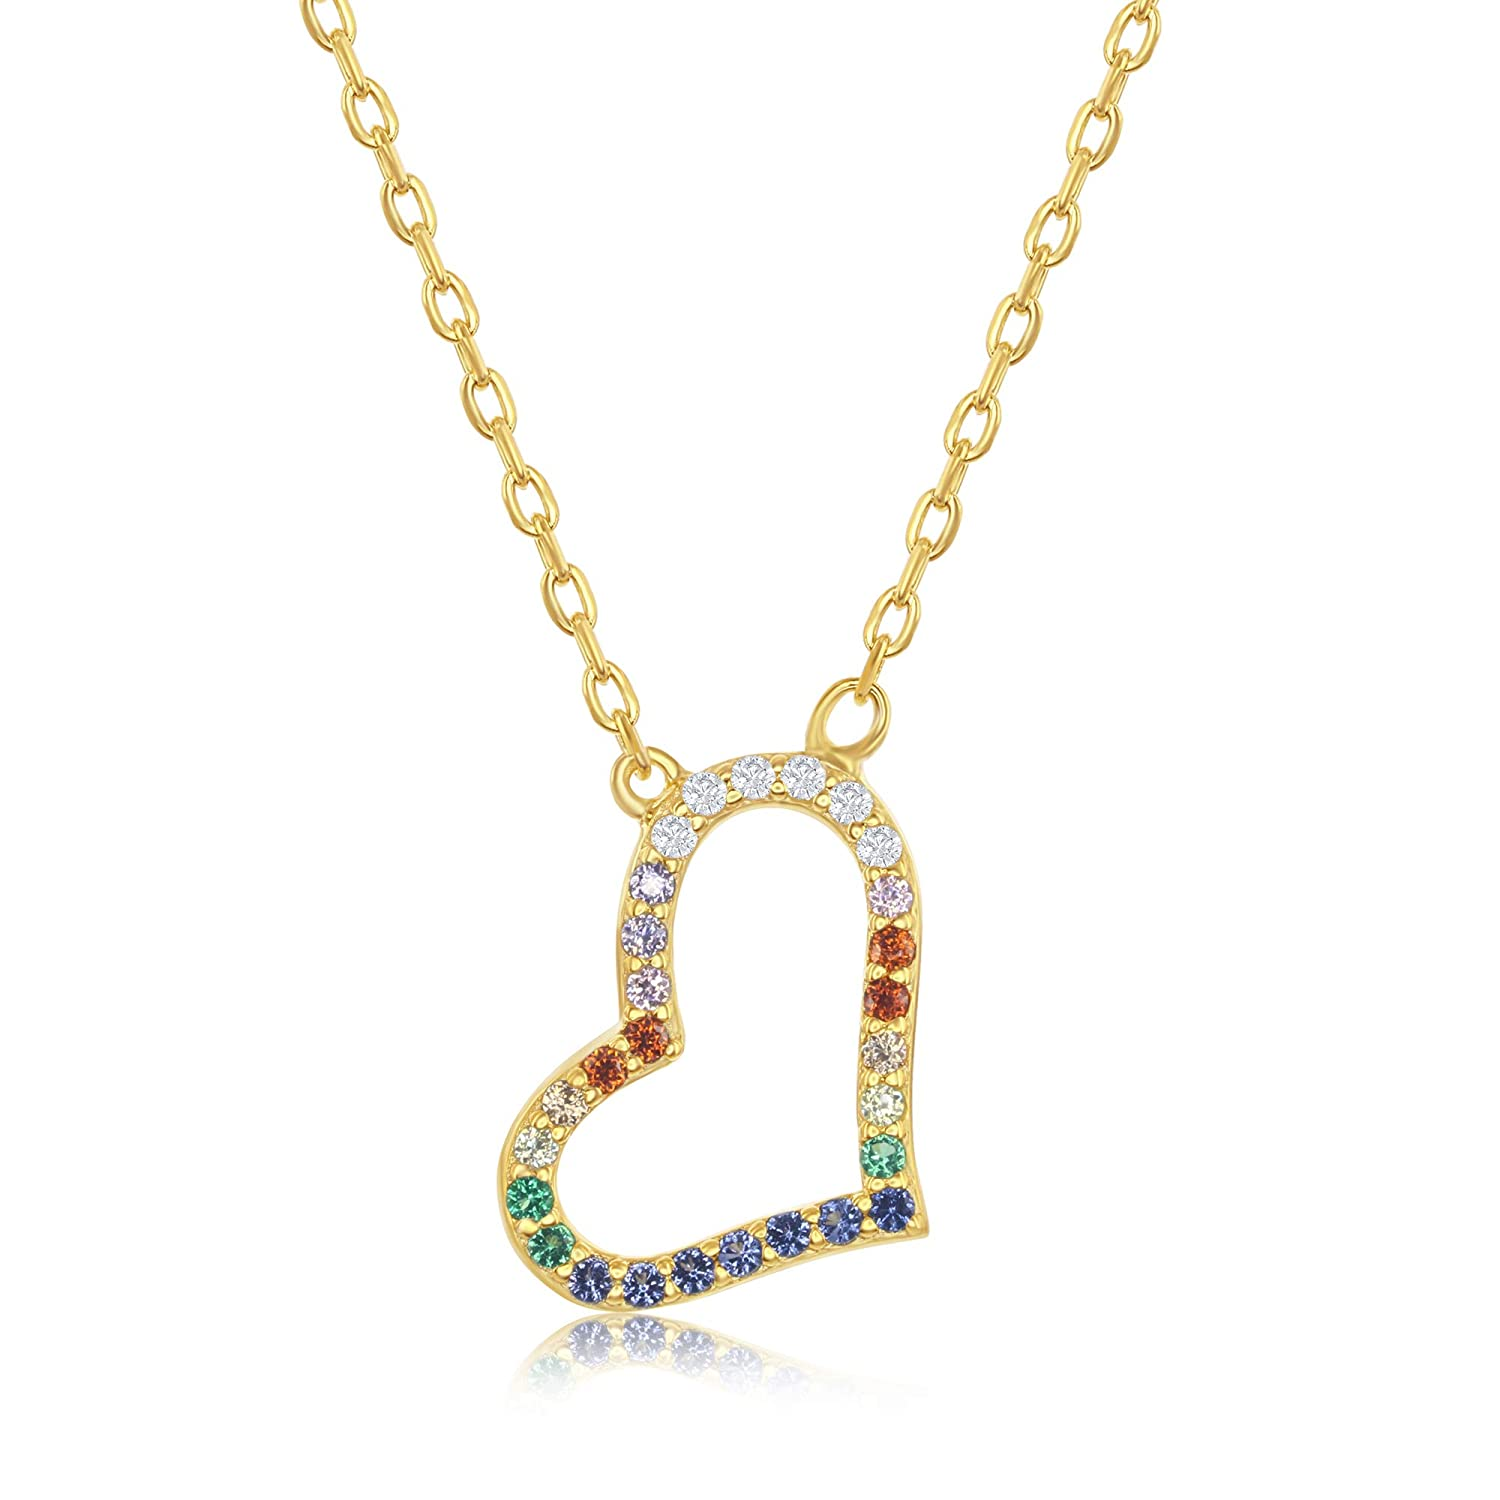 Sterling Silver//Gold Plated 16+2 Rainbow Cubic Zirconia Sideways Heart Necklace